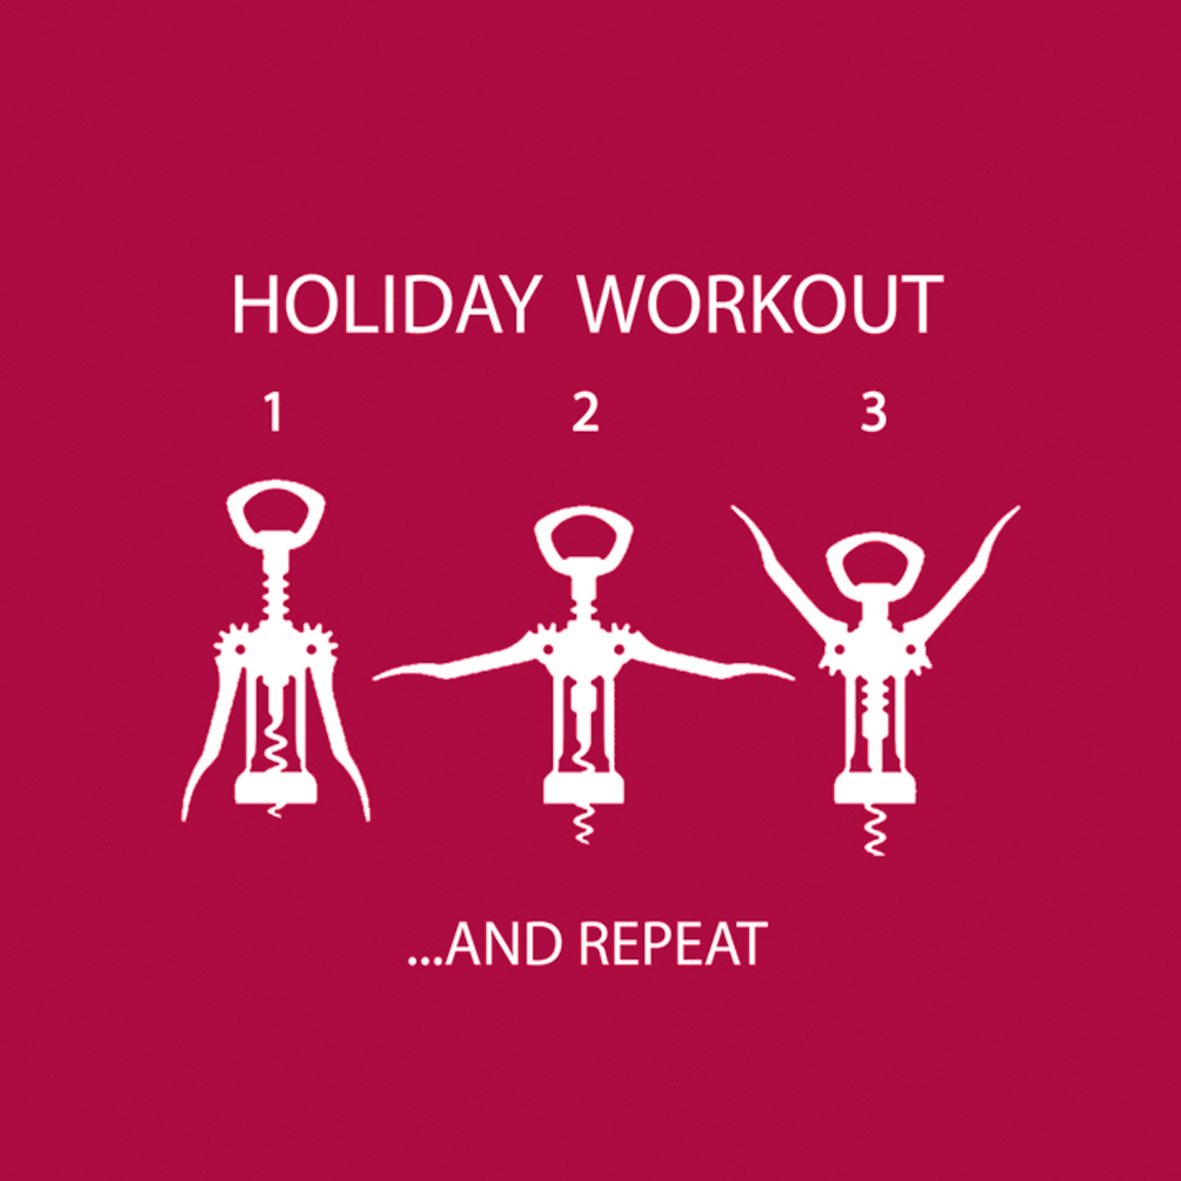 Cocktail Servietten Wine Lovers Workout 25x25 cm,   geprägte Servietten,  Getränke -  Sonstige,  Everyday,  cocktail servietten,  Schriften,  Getränke